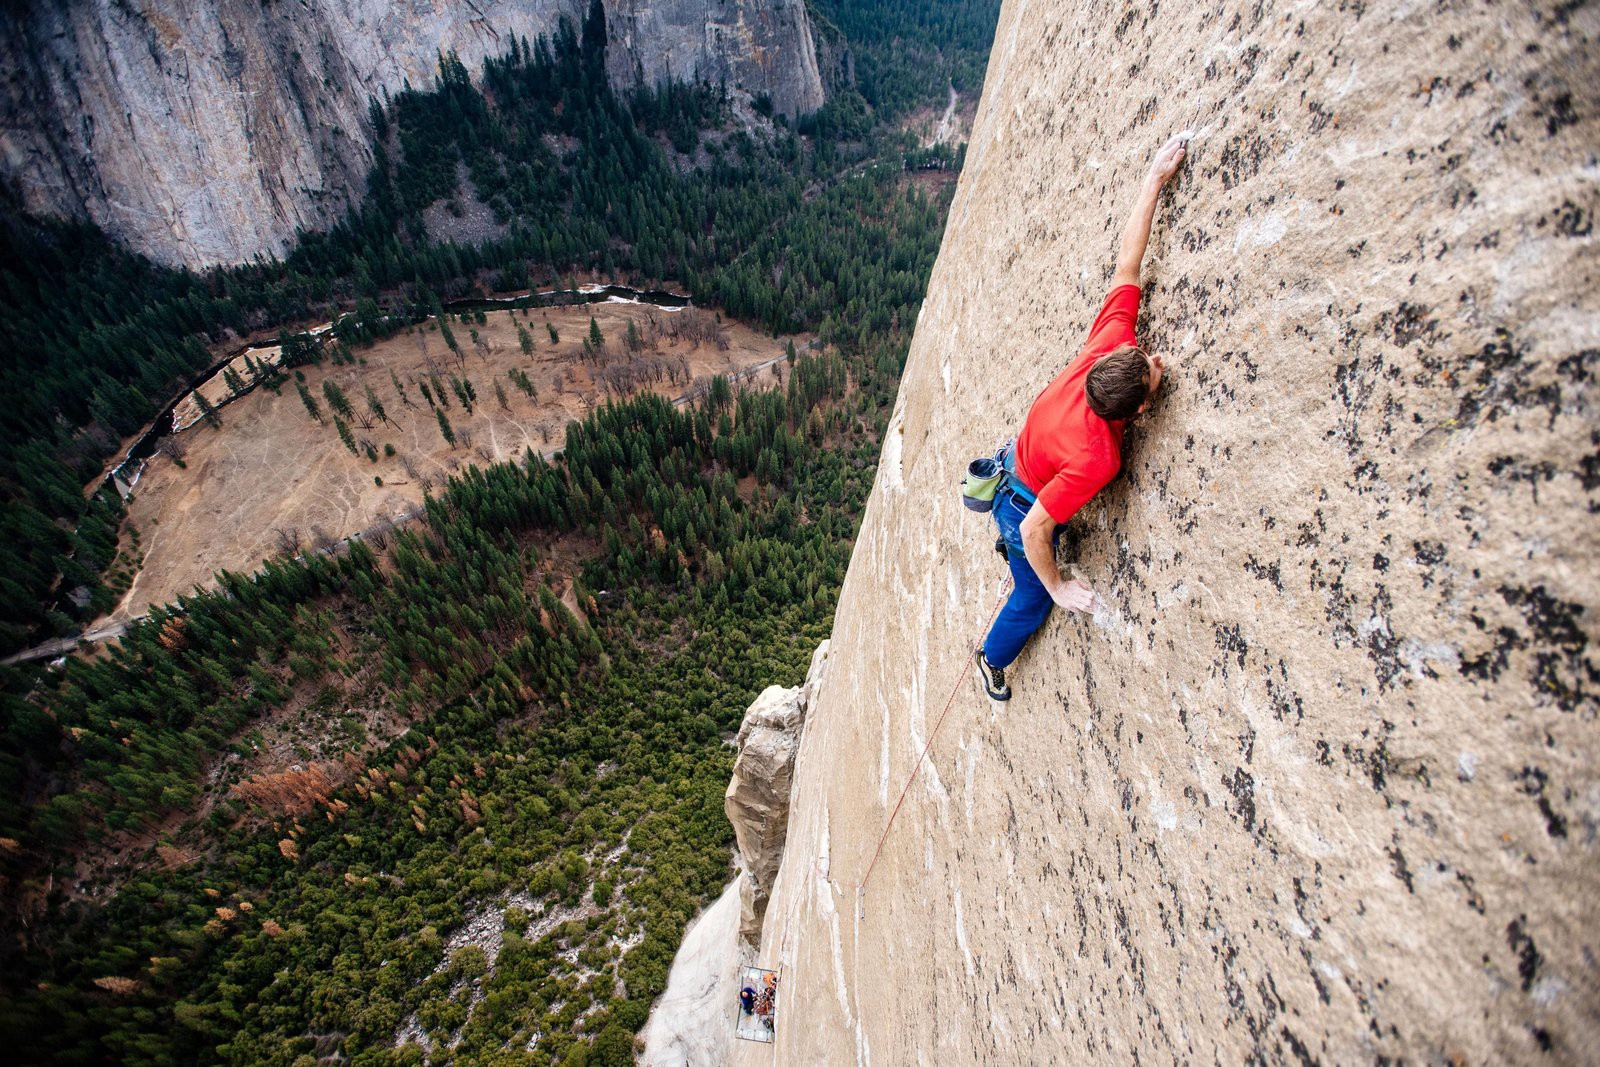 SXSW 2018: THE DAWN WALL Is a Must-See Adventure Documentary